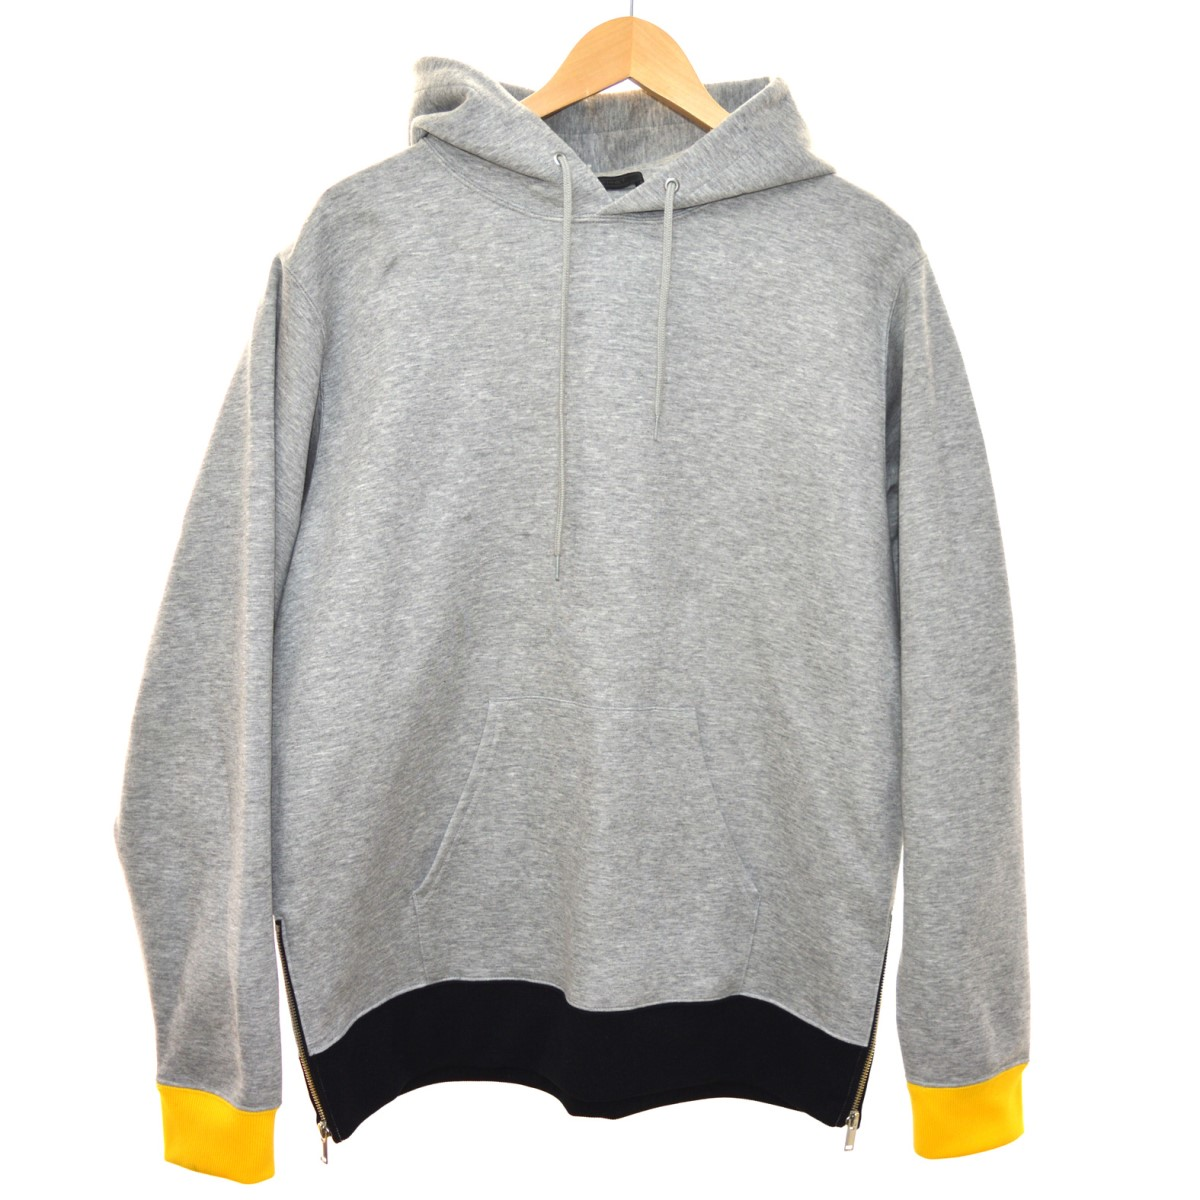 【中古】SOPHNET. 18AW COLOR RIB BET HEM ZIP PULL OVER HOODY パーカー グレー サイズ:XL 【090420】(ソフネット)